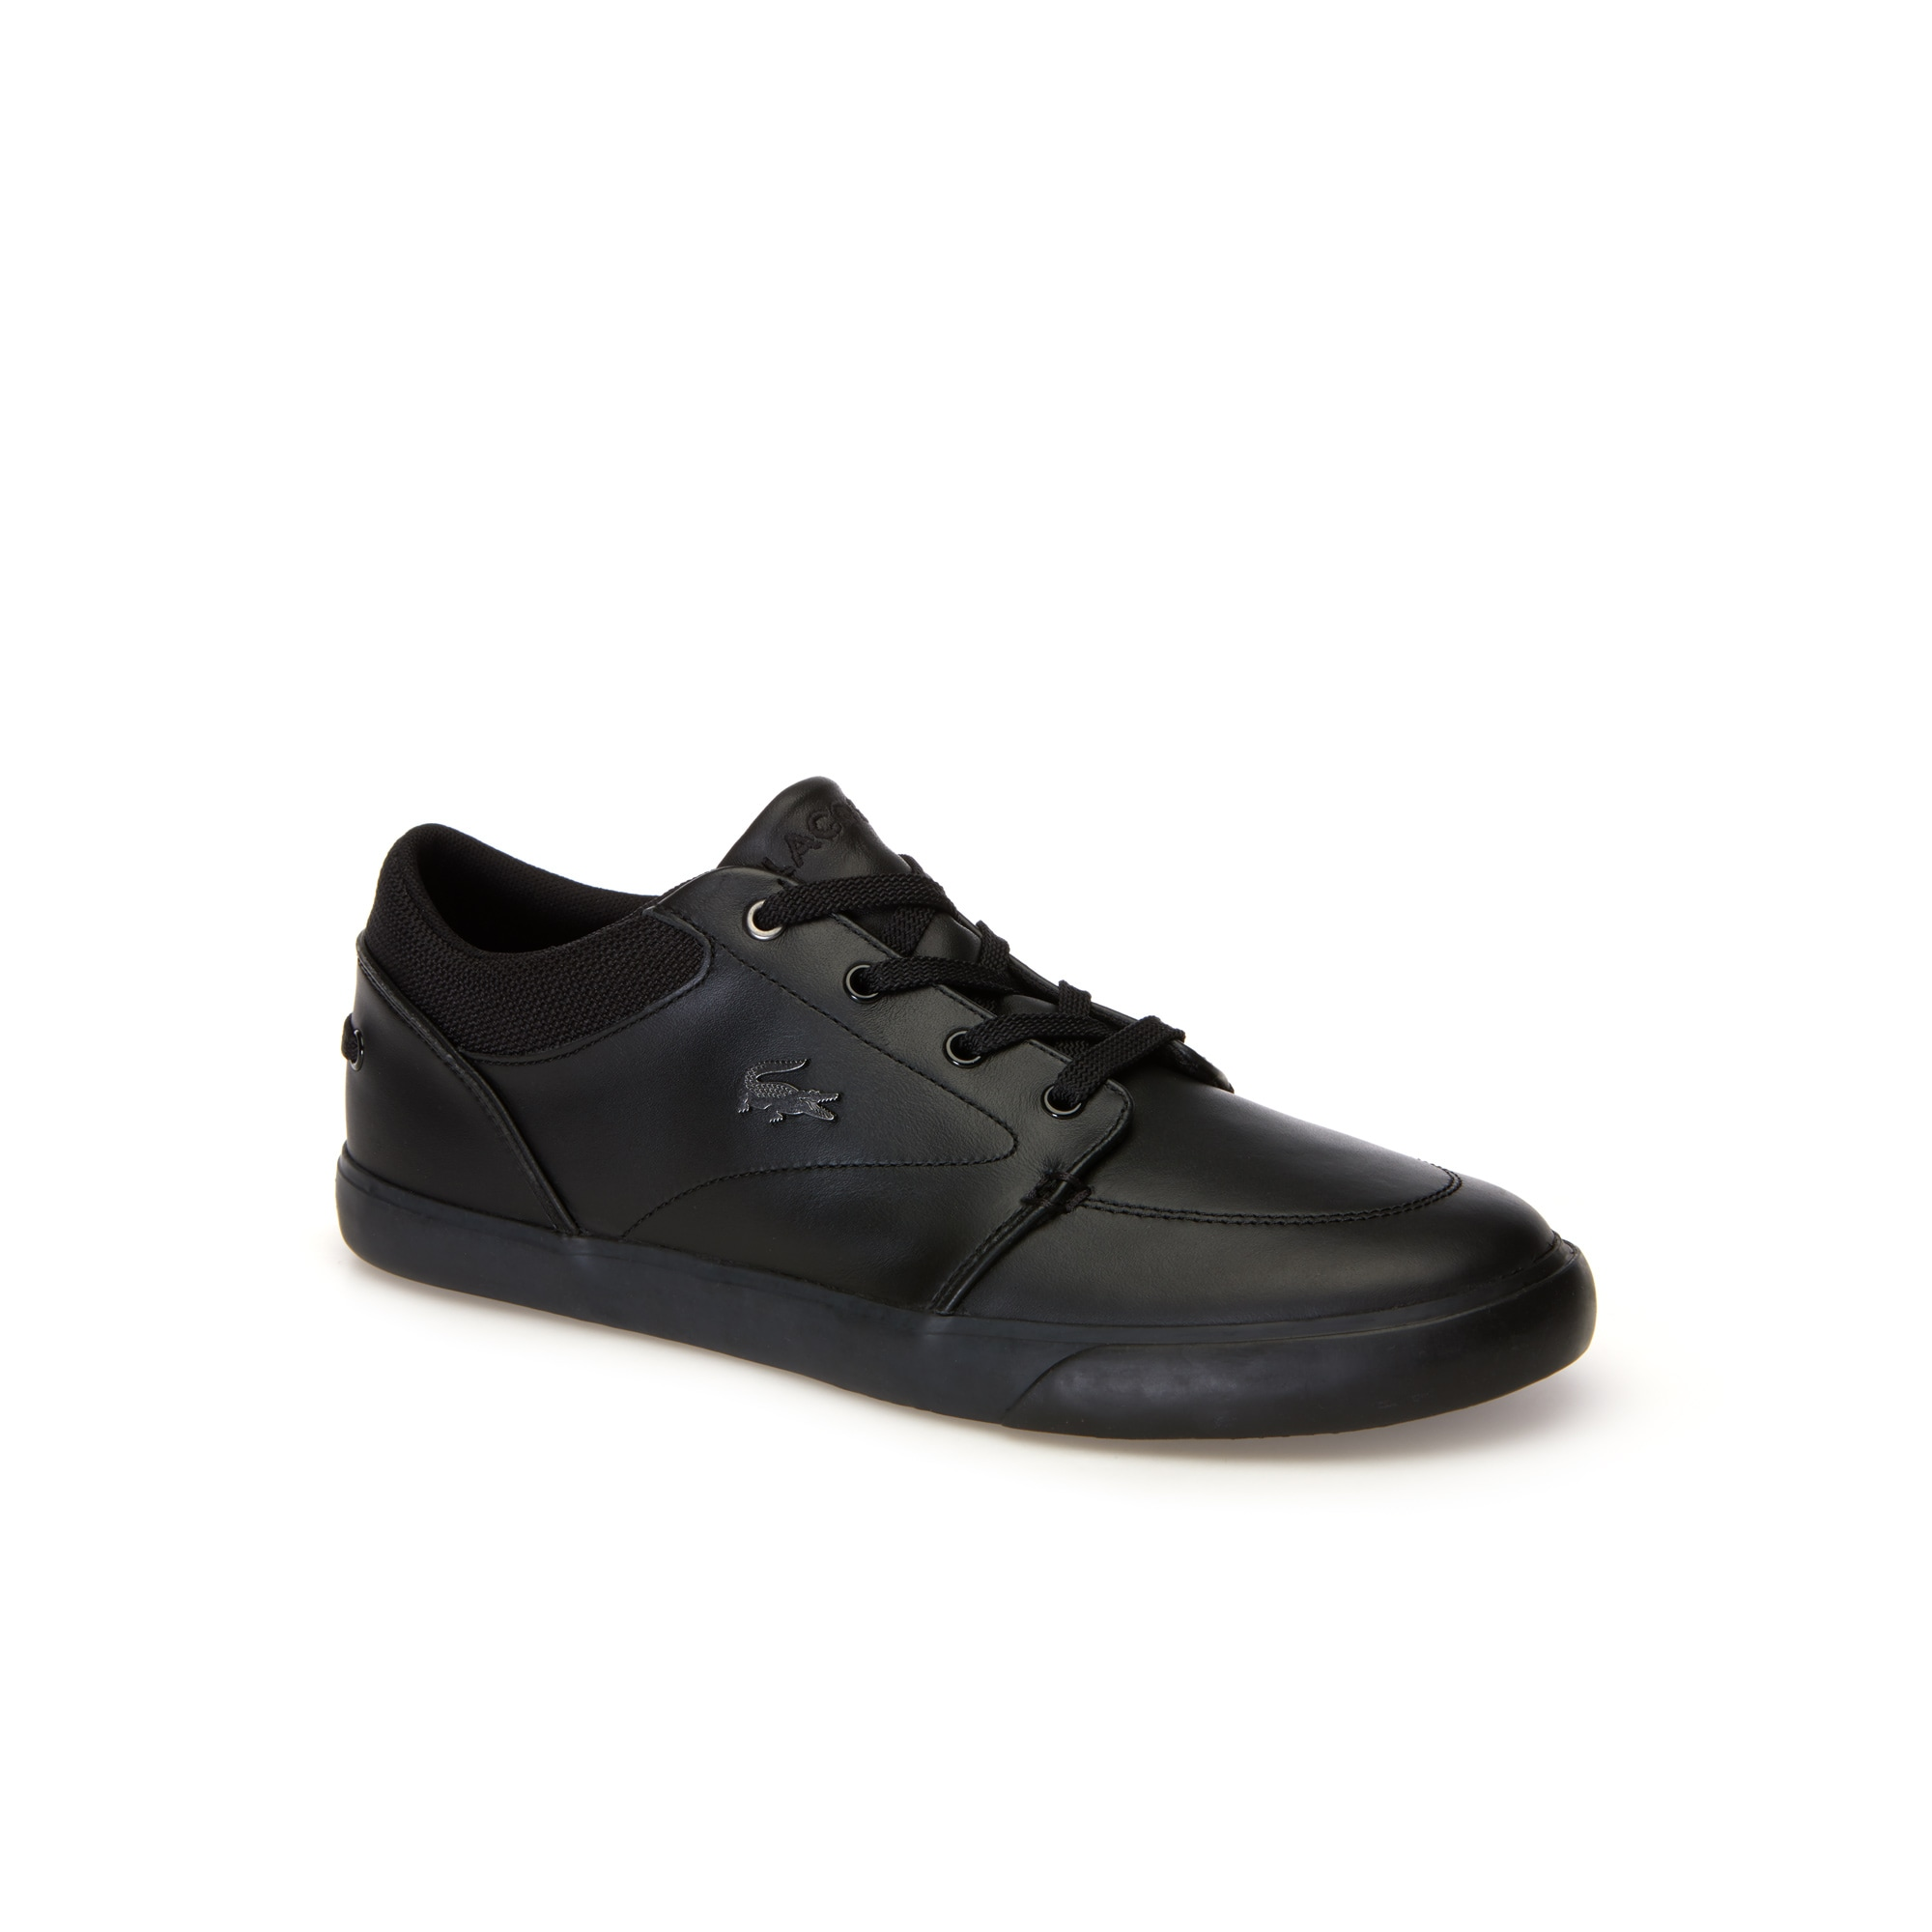 Sneakers Bayliss homme en cuir